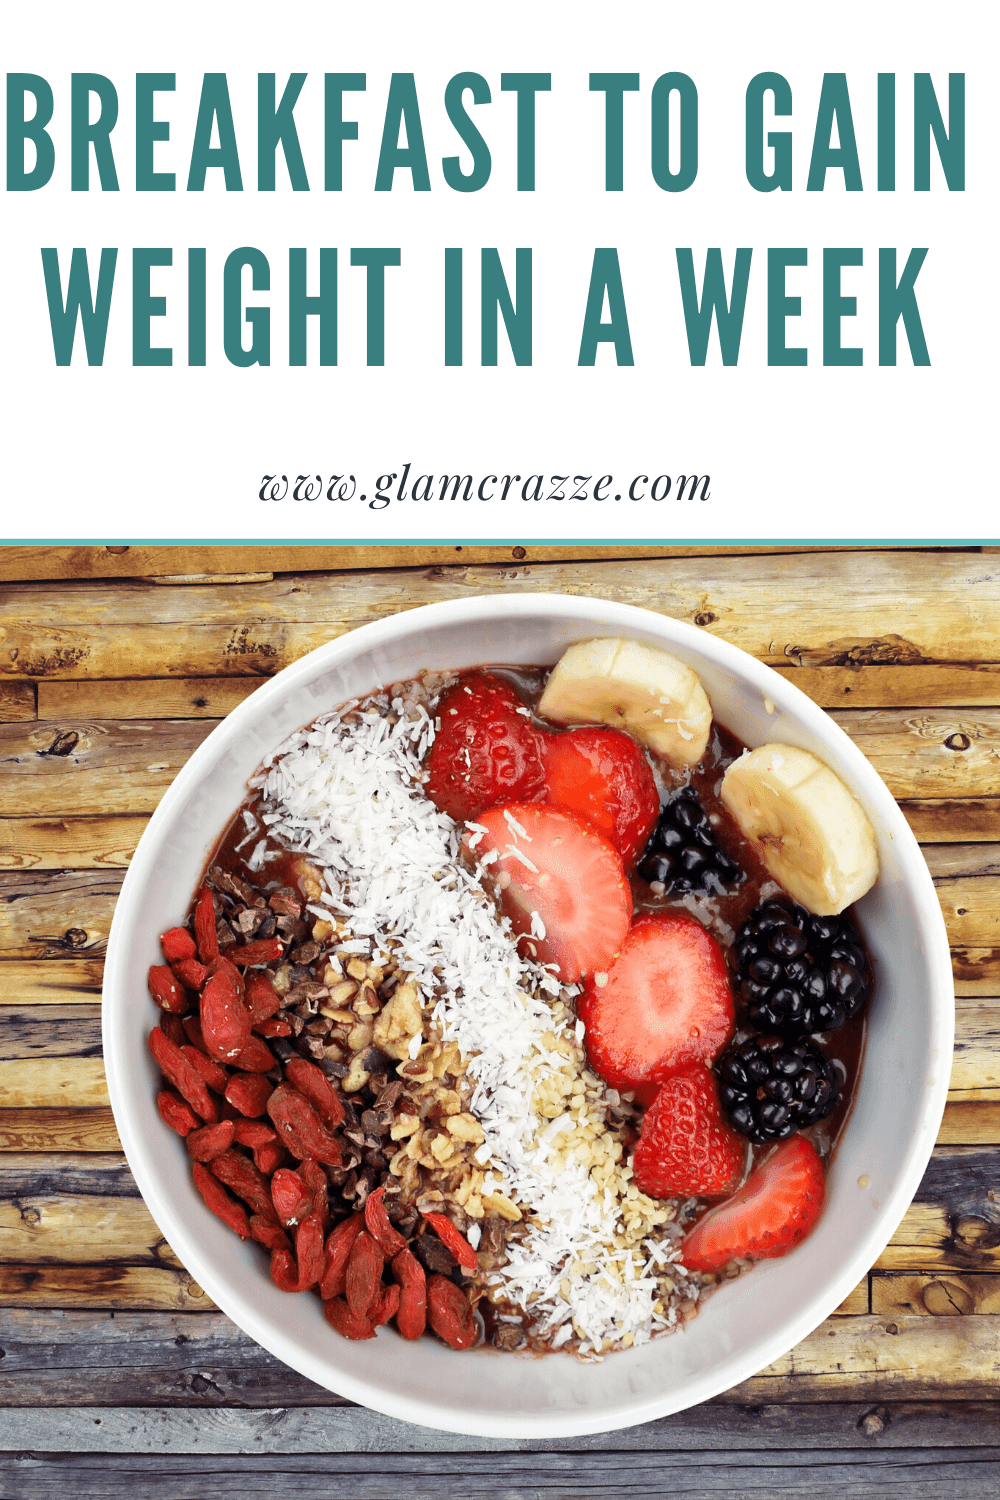 How to gain weight in a week have healthy breakfast